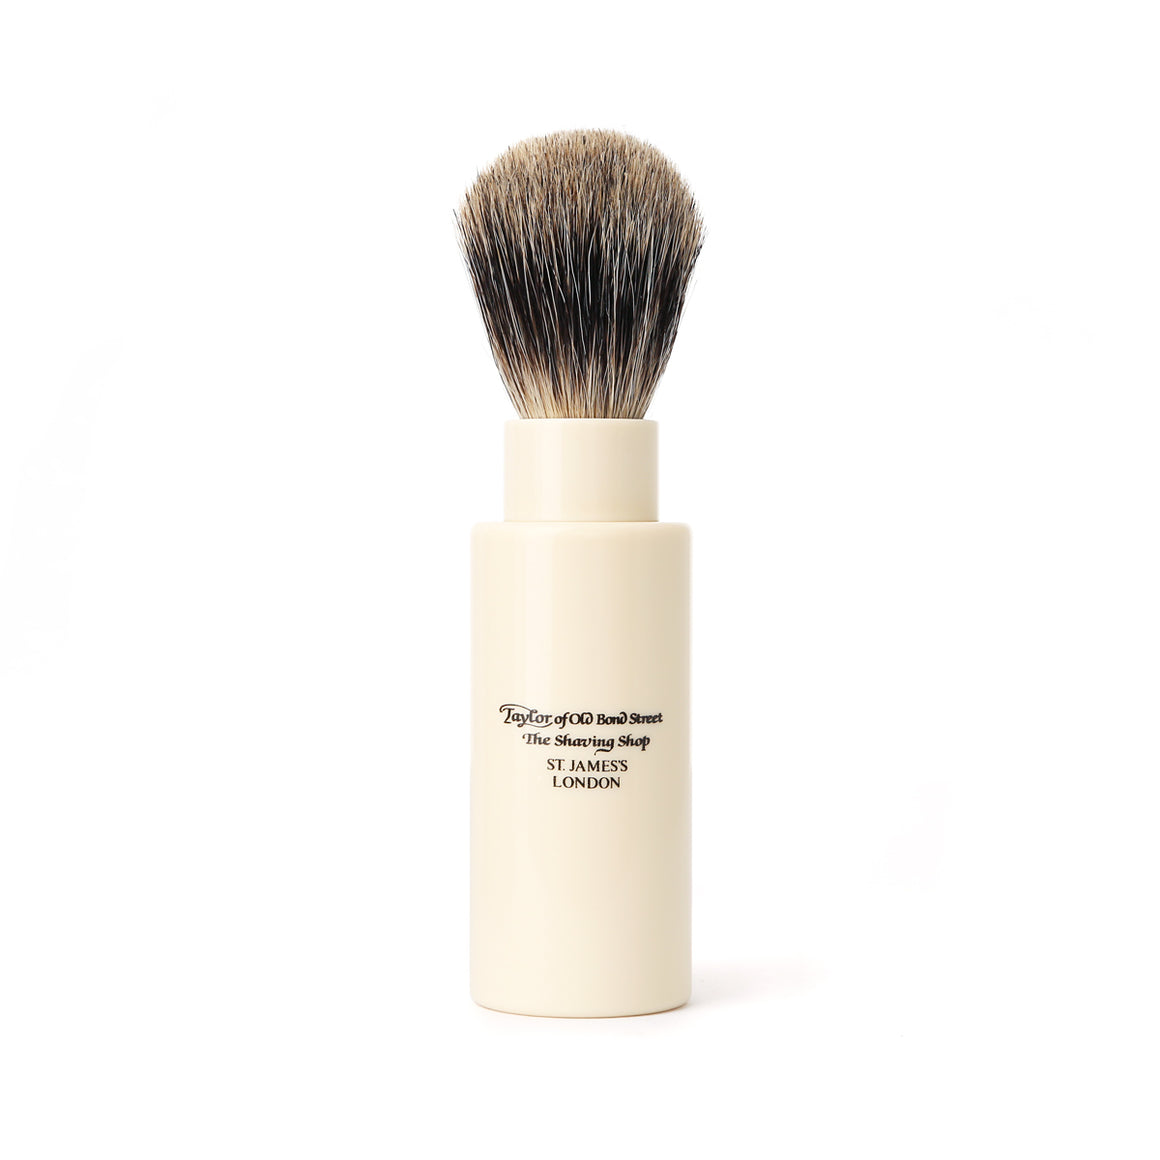 Taylor of Old Bond Street Turnback Travel Pure Badger Shaving Brush in Imitation Ivory